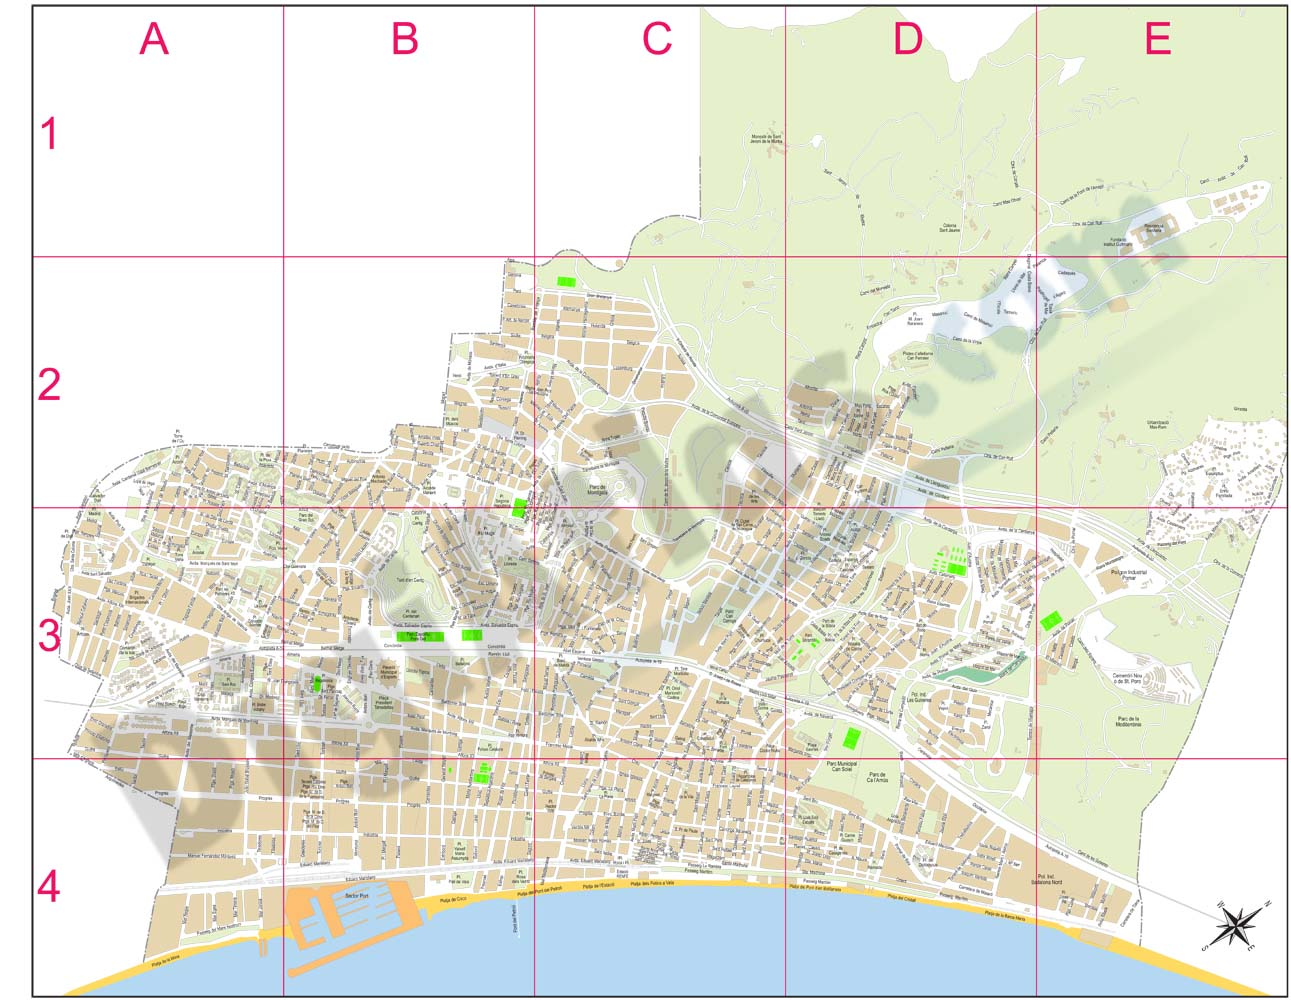 Badalona (Barcelona, Spain) - city map